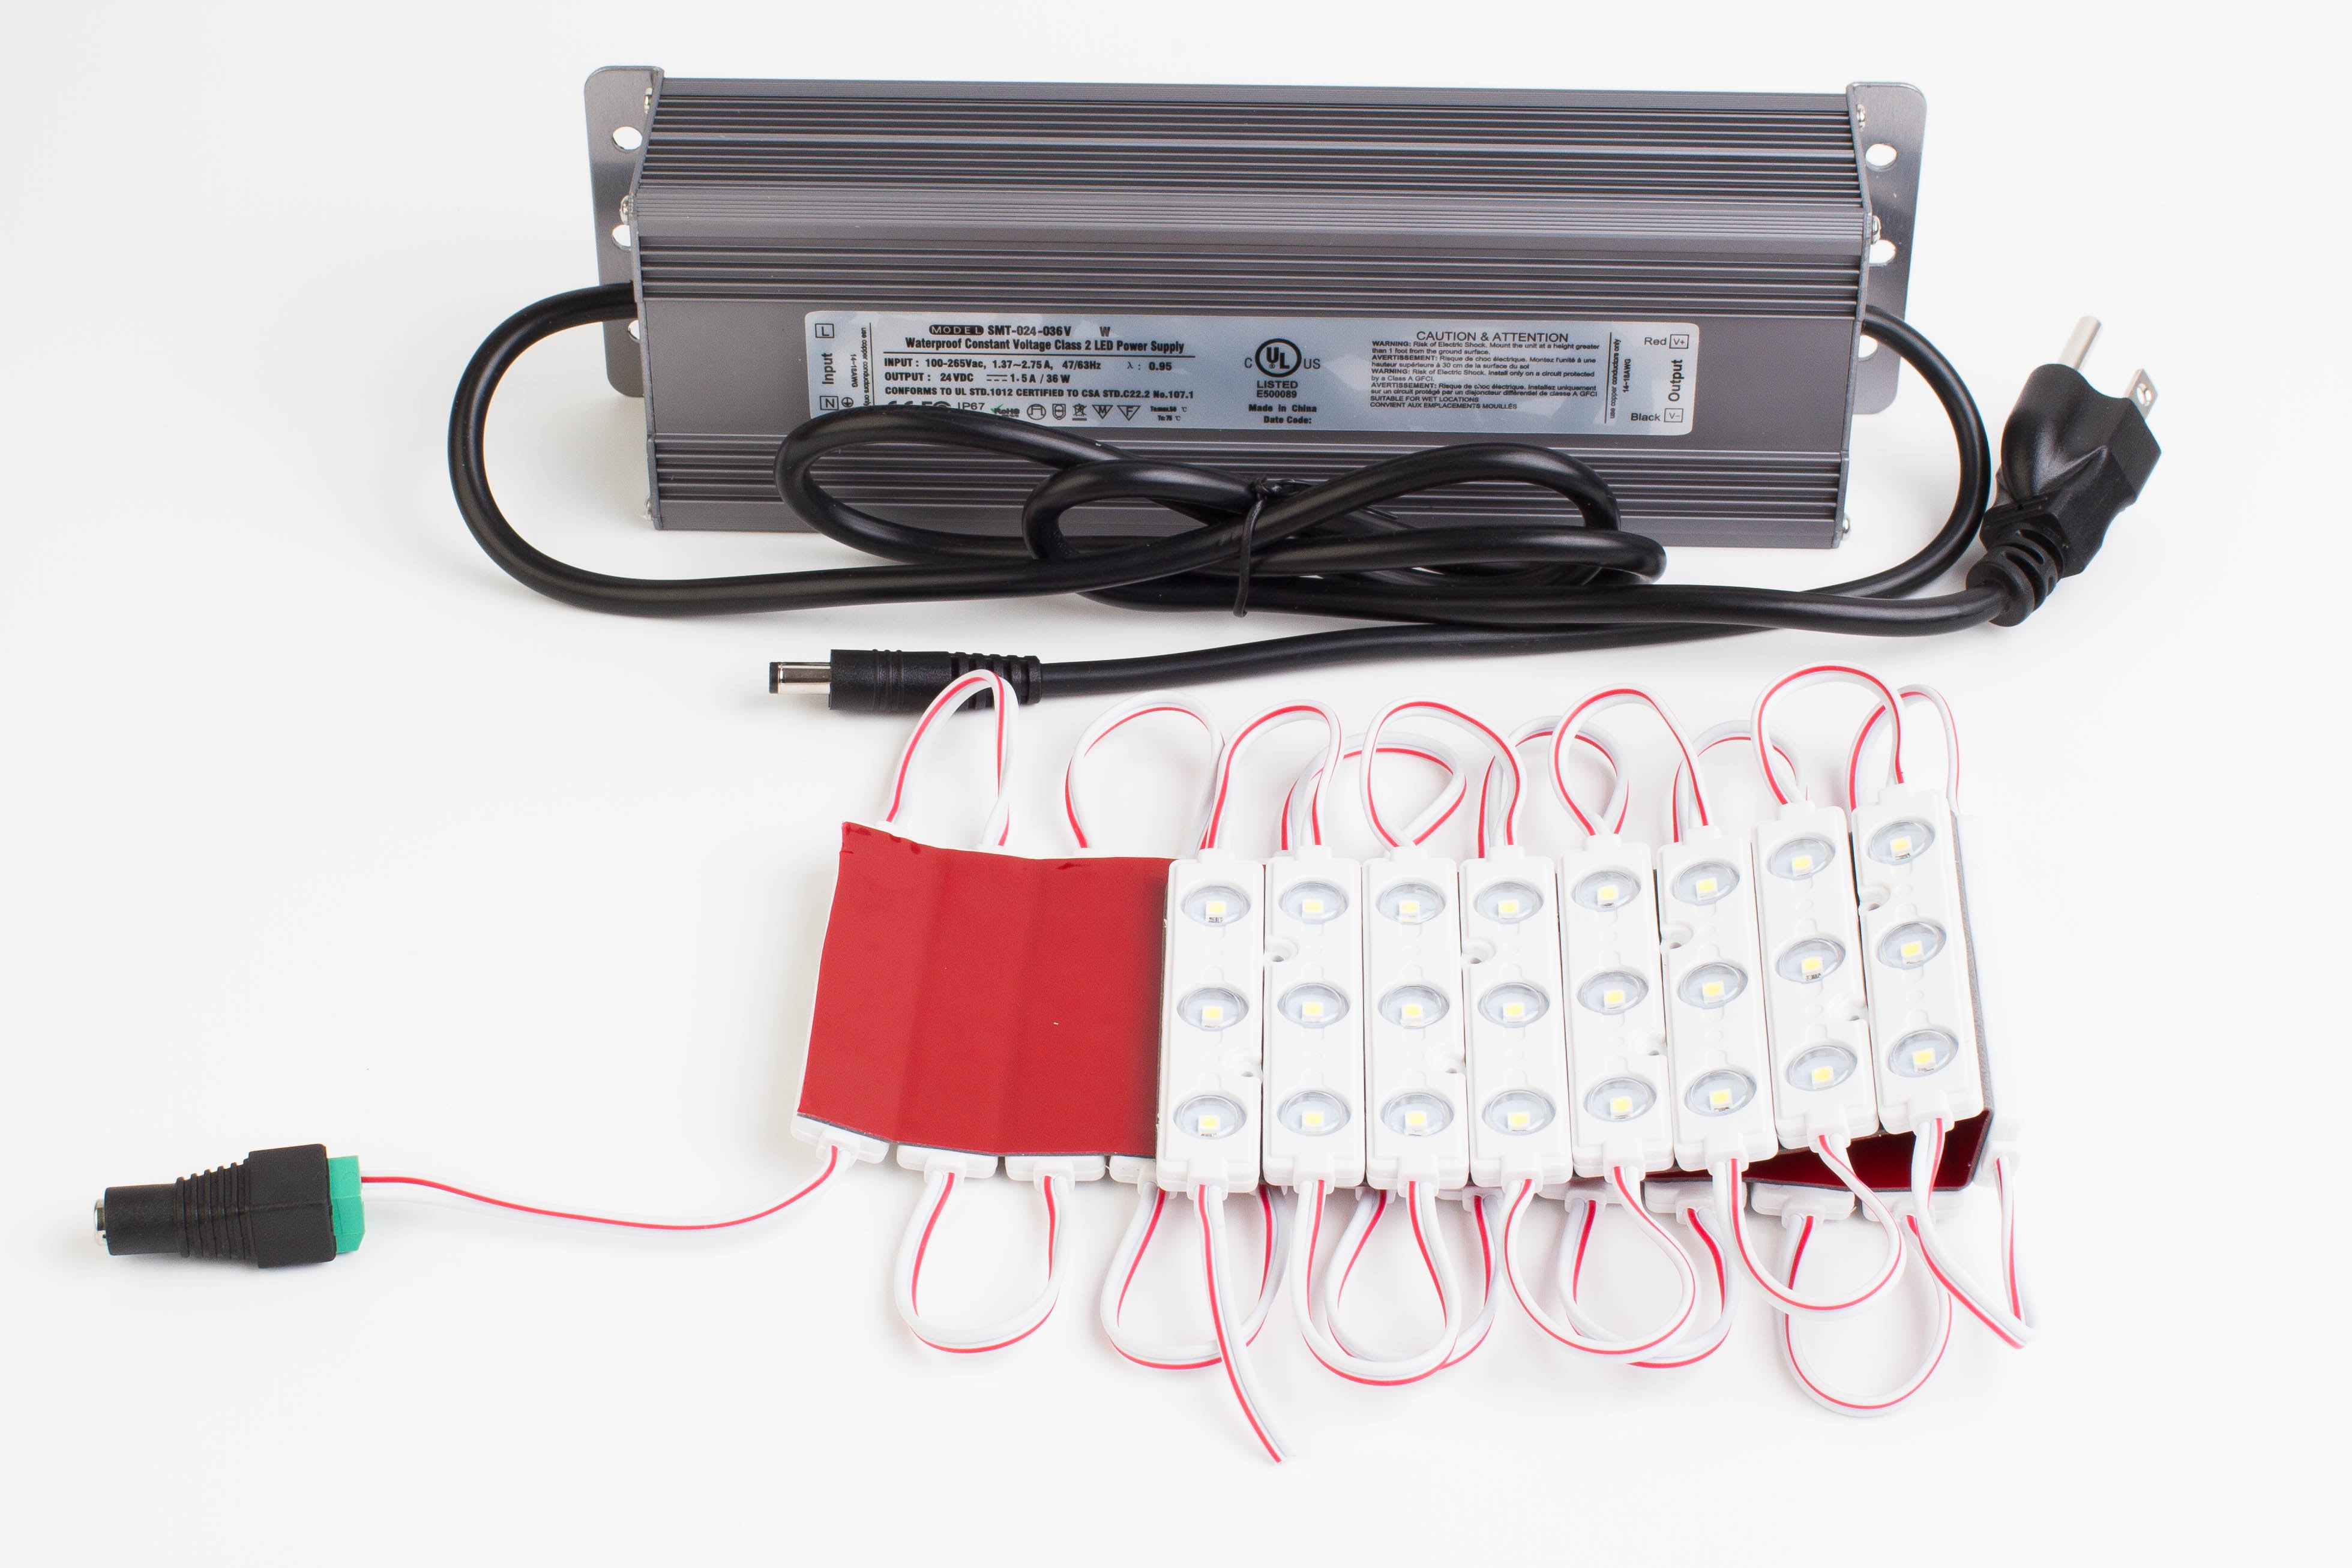 24v Fridge cooler LED module C3030 packages